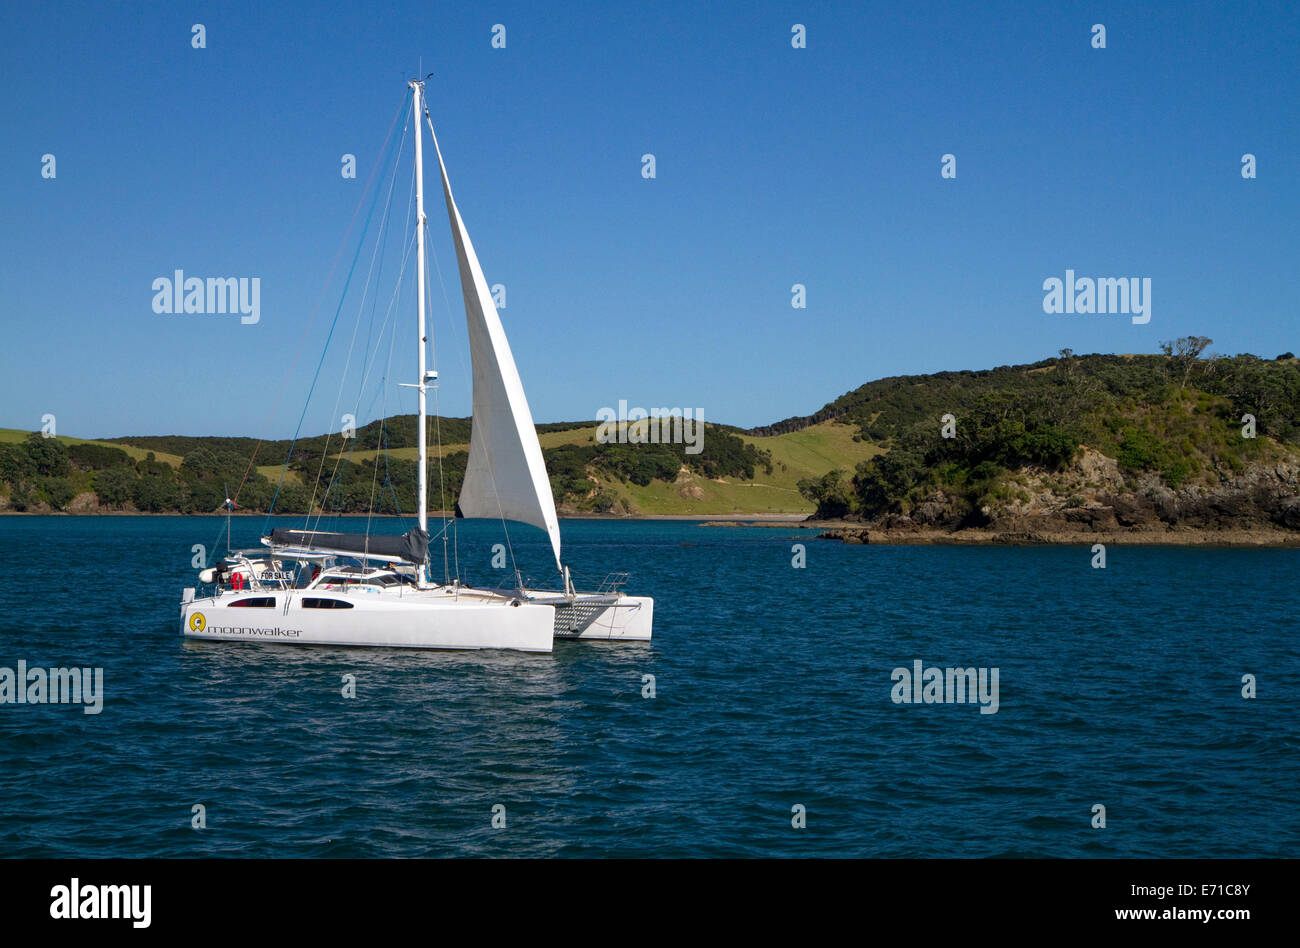 Catamaran in the Bay of Islands, North Island, New Zealand. - Stock Image